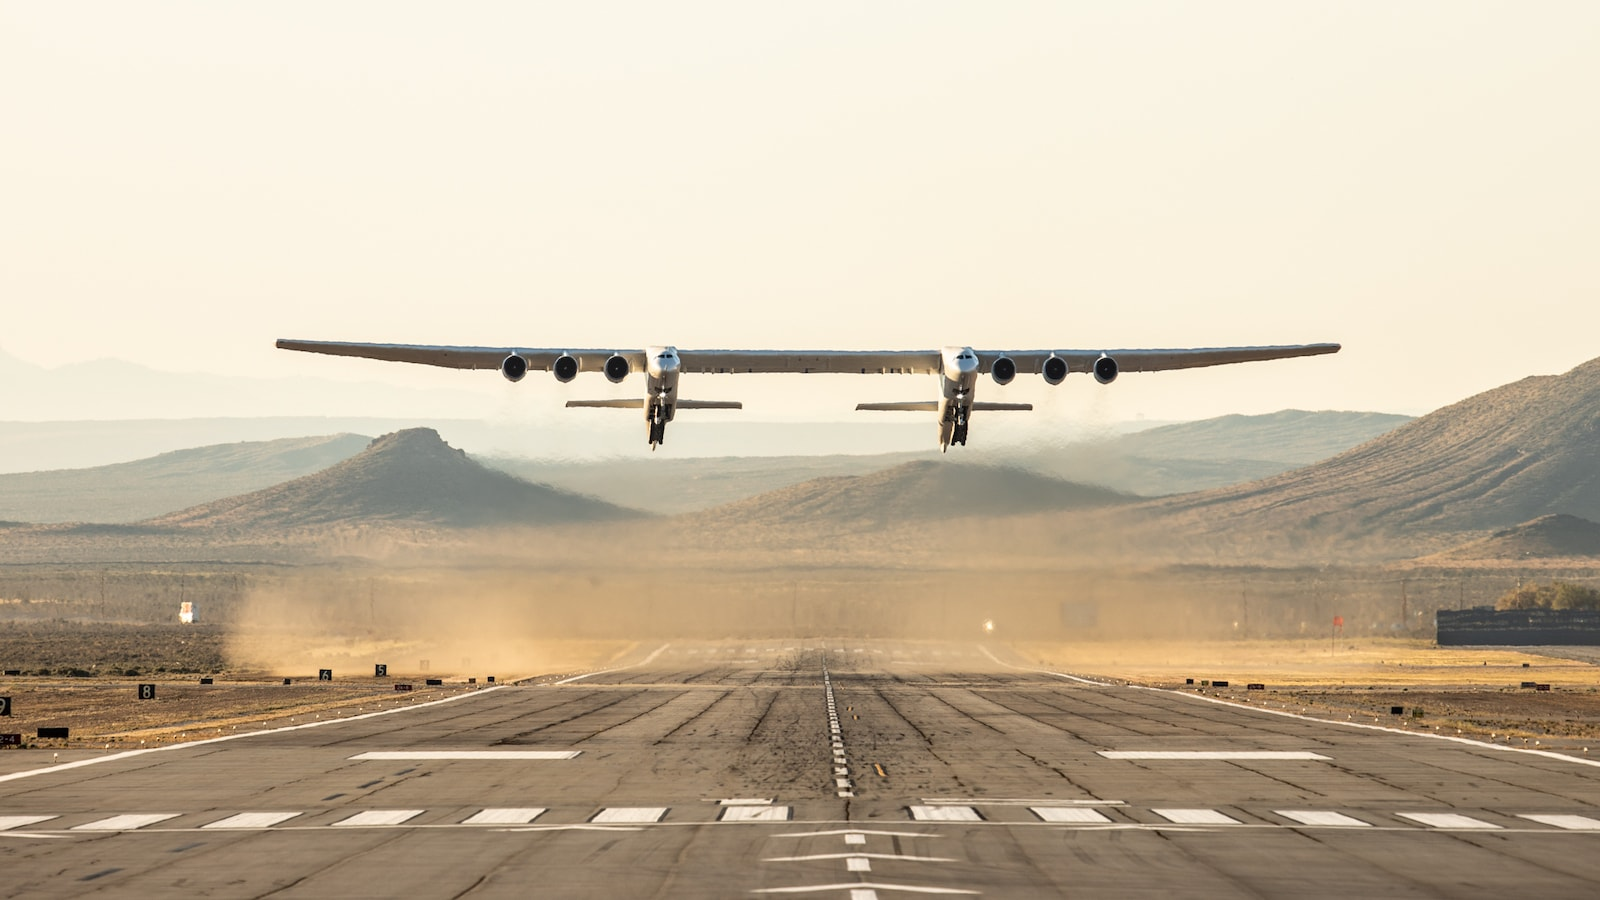 Stratolaunch was founded by the late Microsoft co-founder Paul Allen in 2011 to develop the large carrier airplane as a flying launch pad for orbital-class rockets. (Image Credit: Stratolaunch)